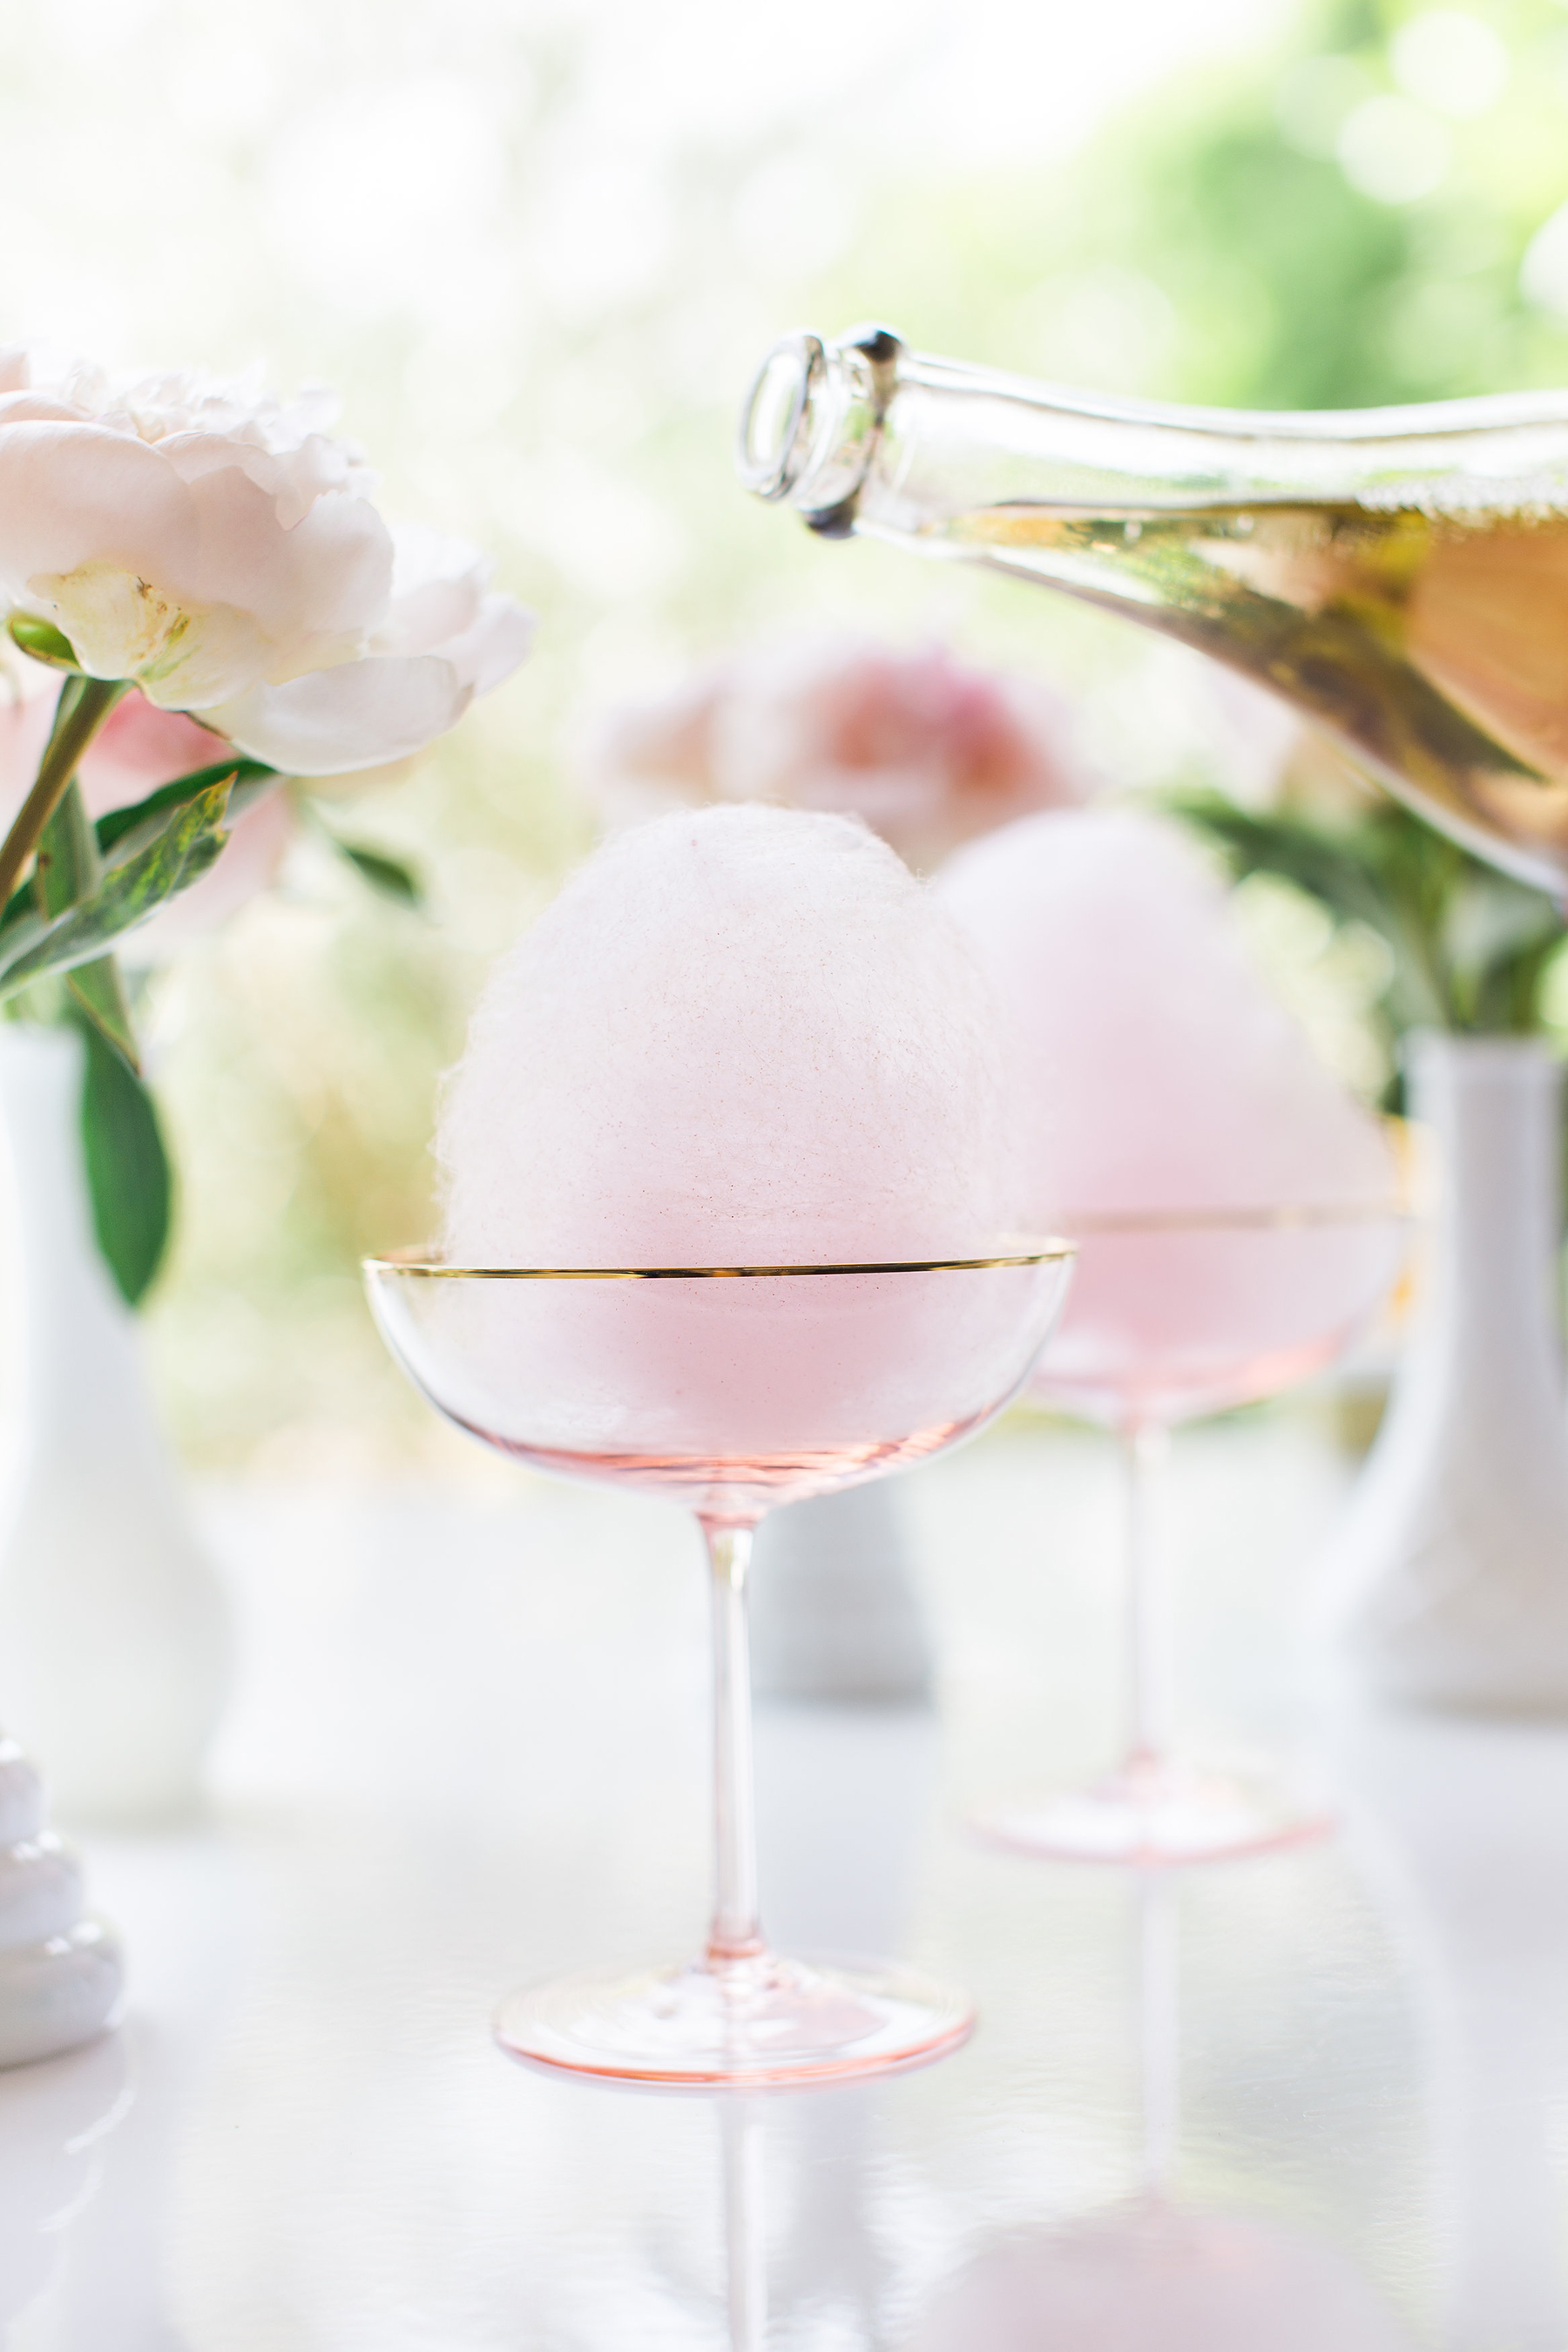 Champagne Cocktail with Cotton Candy